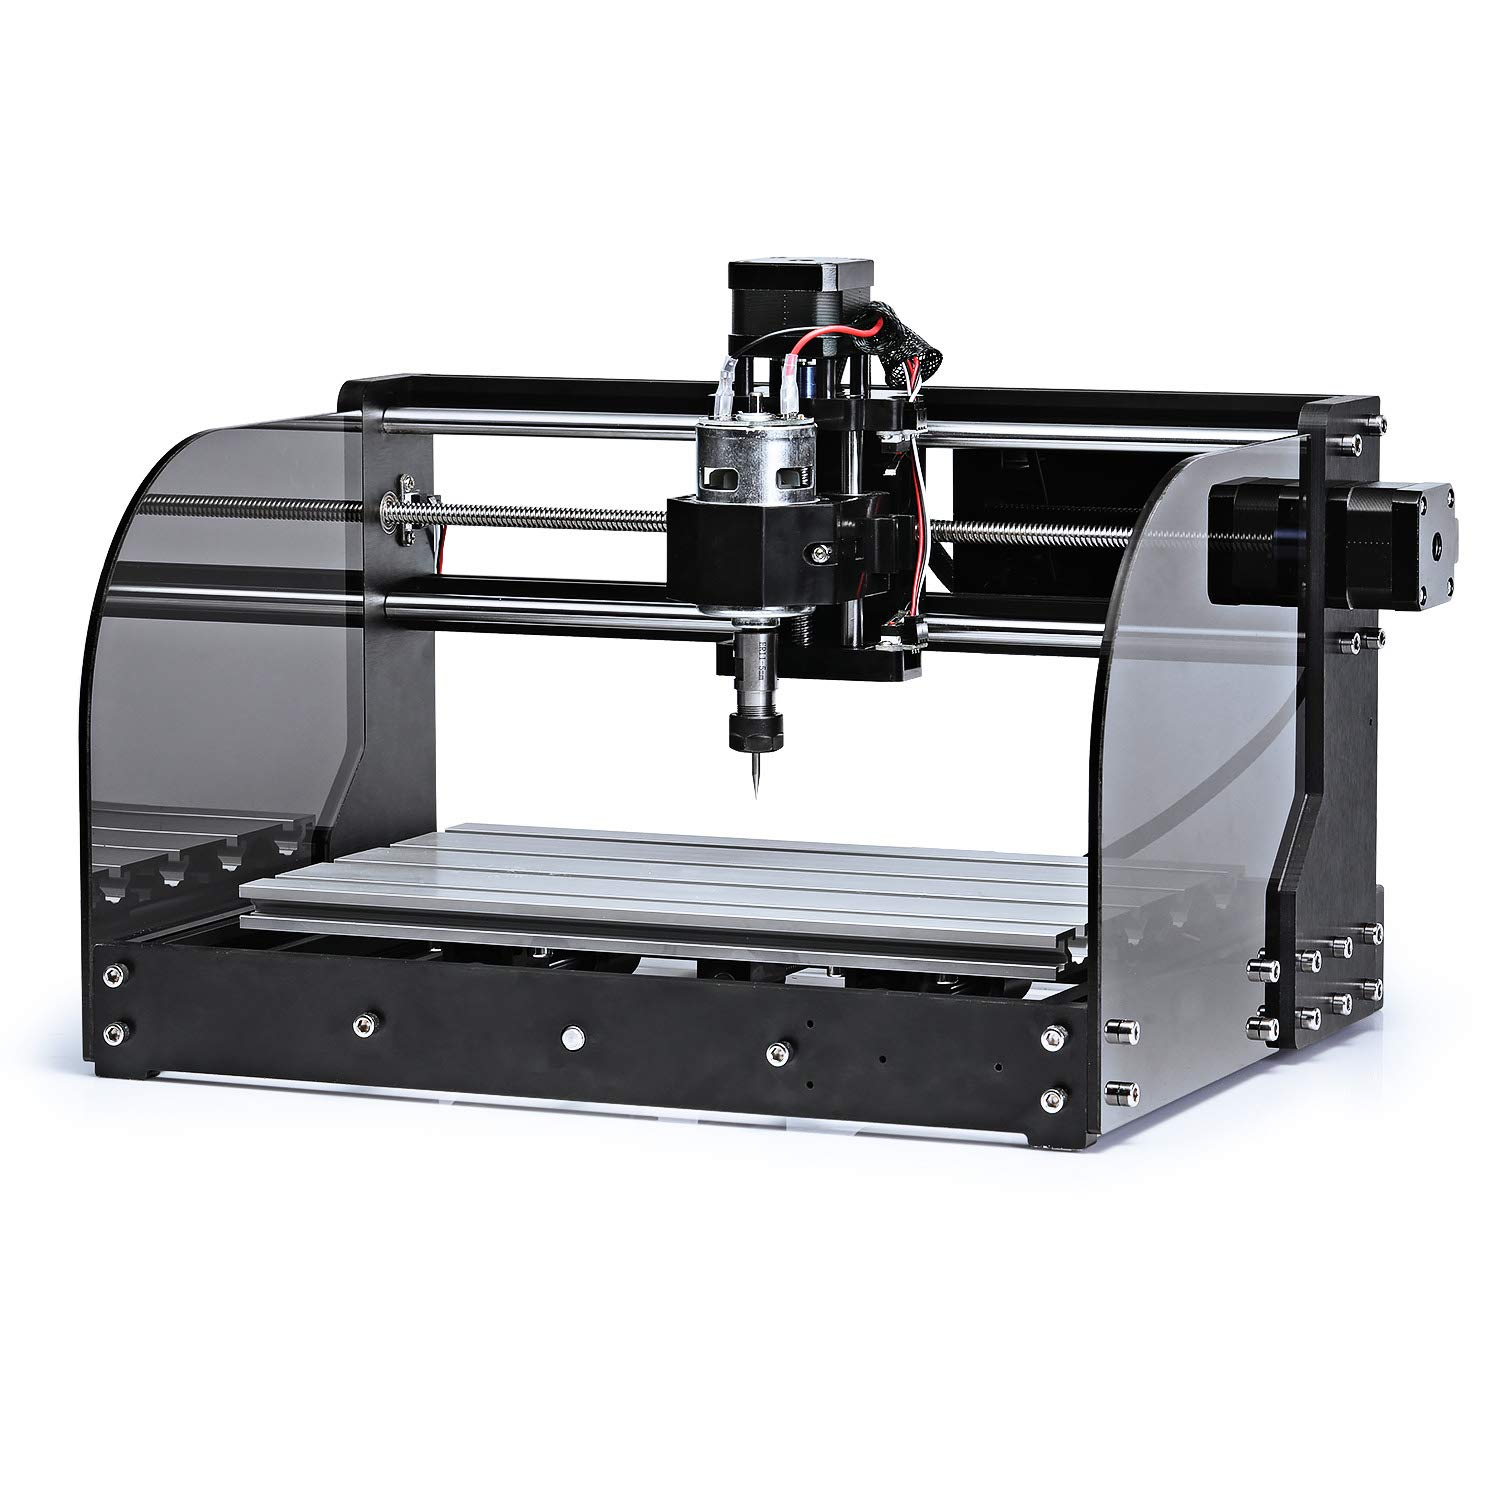 Used Milling Machines Power Tools Tools Home Amazon Com >> Sainsmart Genmitsu Cnc Router Machine 3018 Mx3 With Mach3 Control And Safety Driven Design